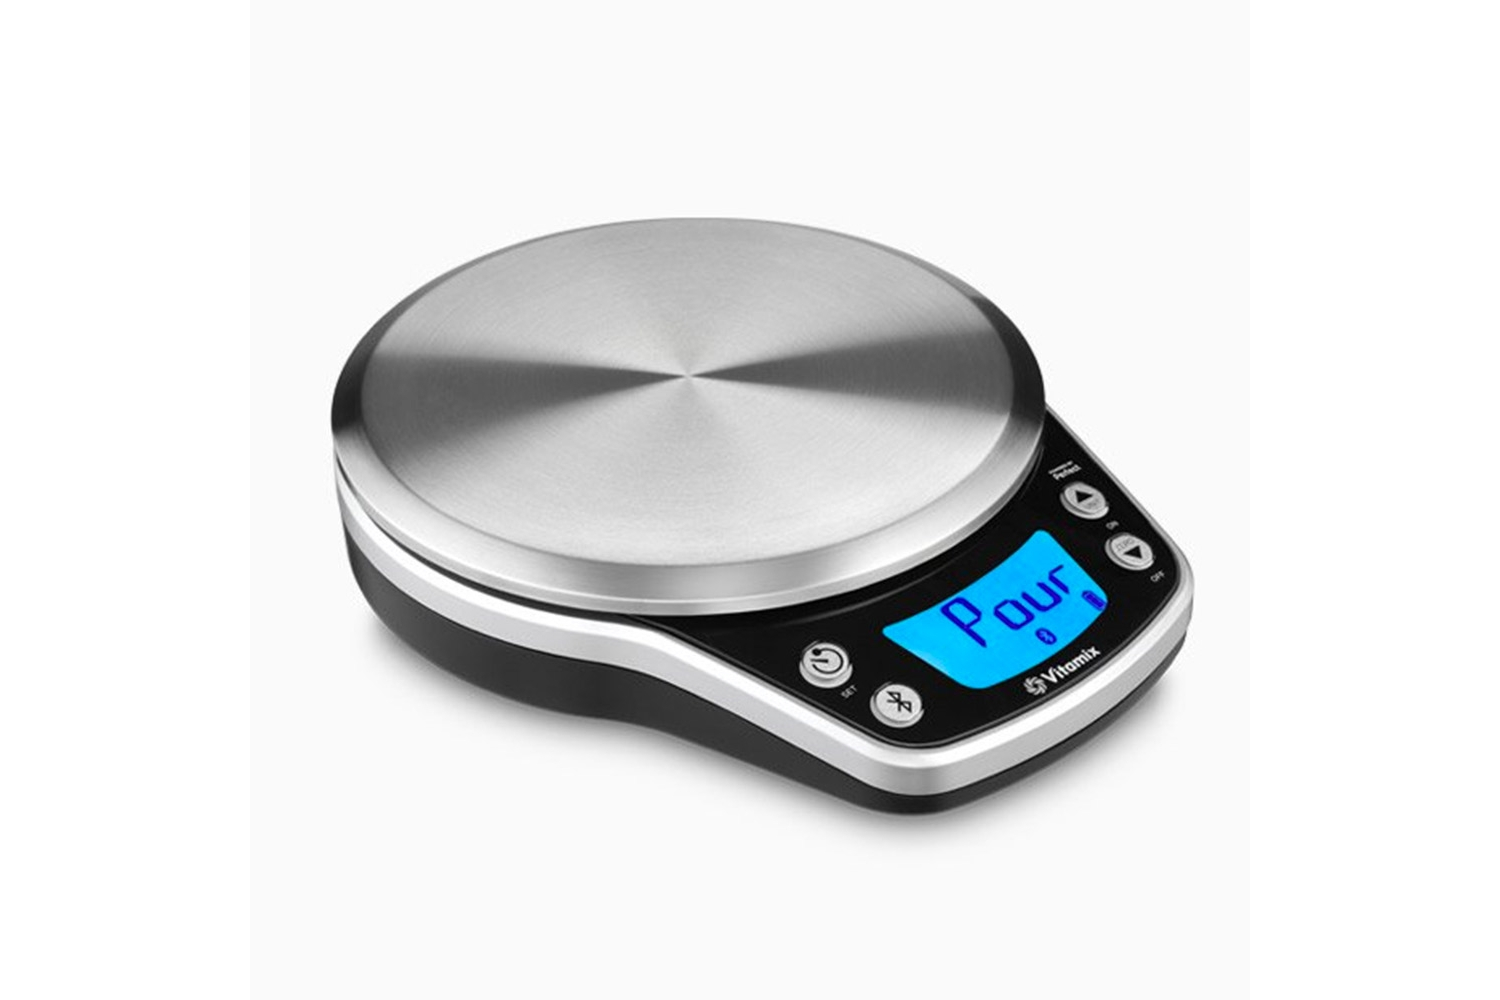 Vitamix Perfect Blend Smart Scale and Recipe App